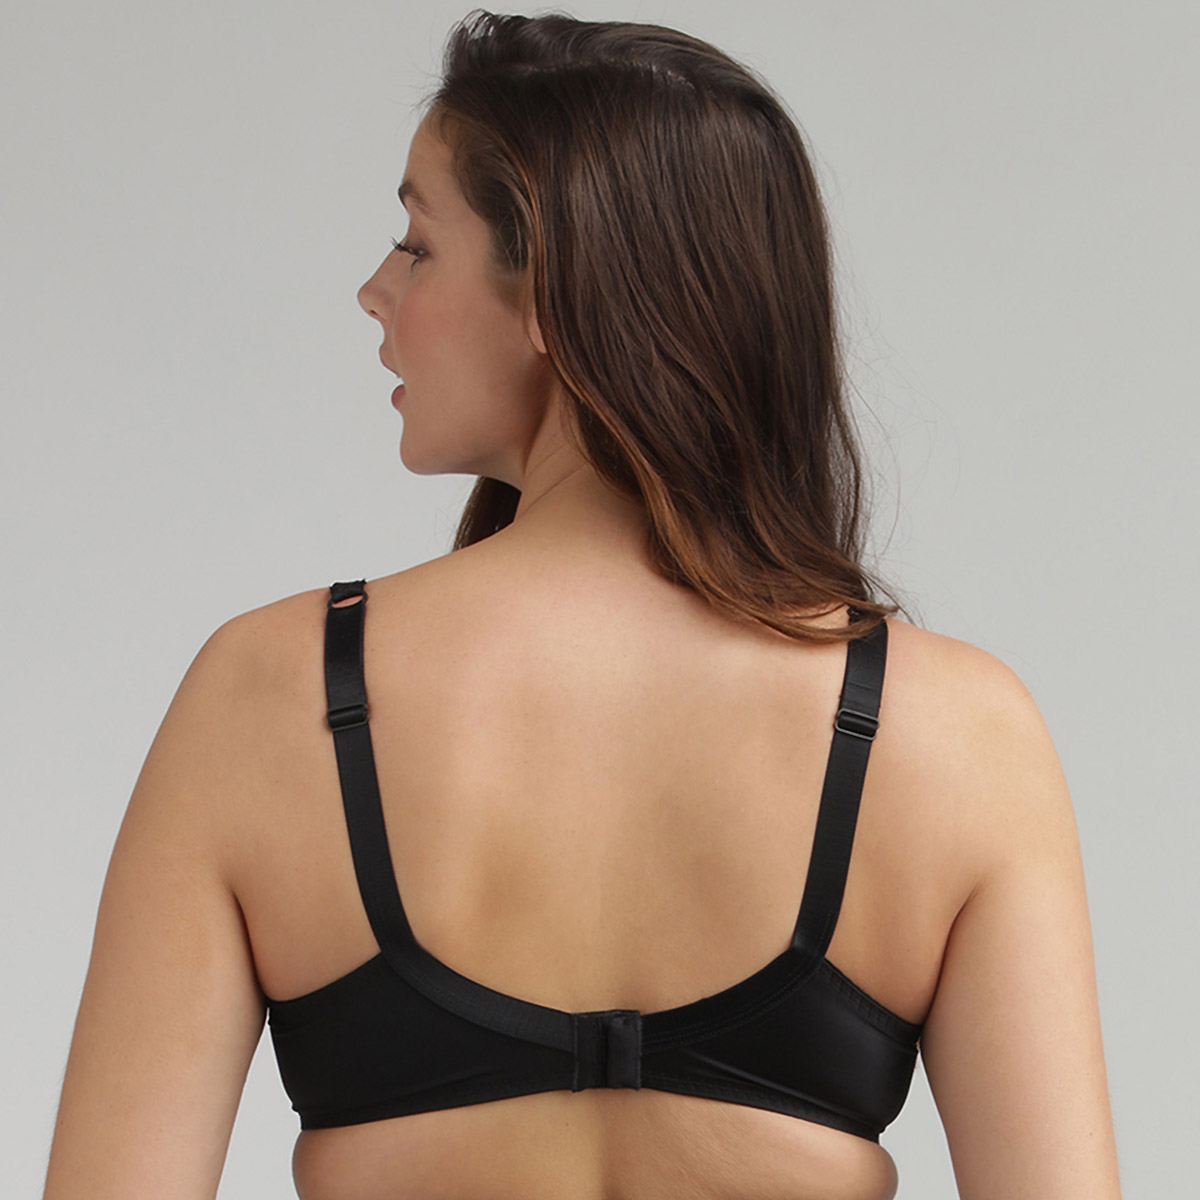 Reggiseno con ferretto nero - Perfect Silhouette, , PLAYTEX